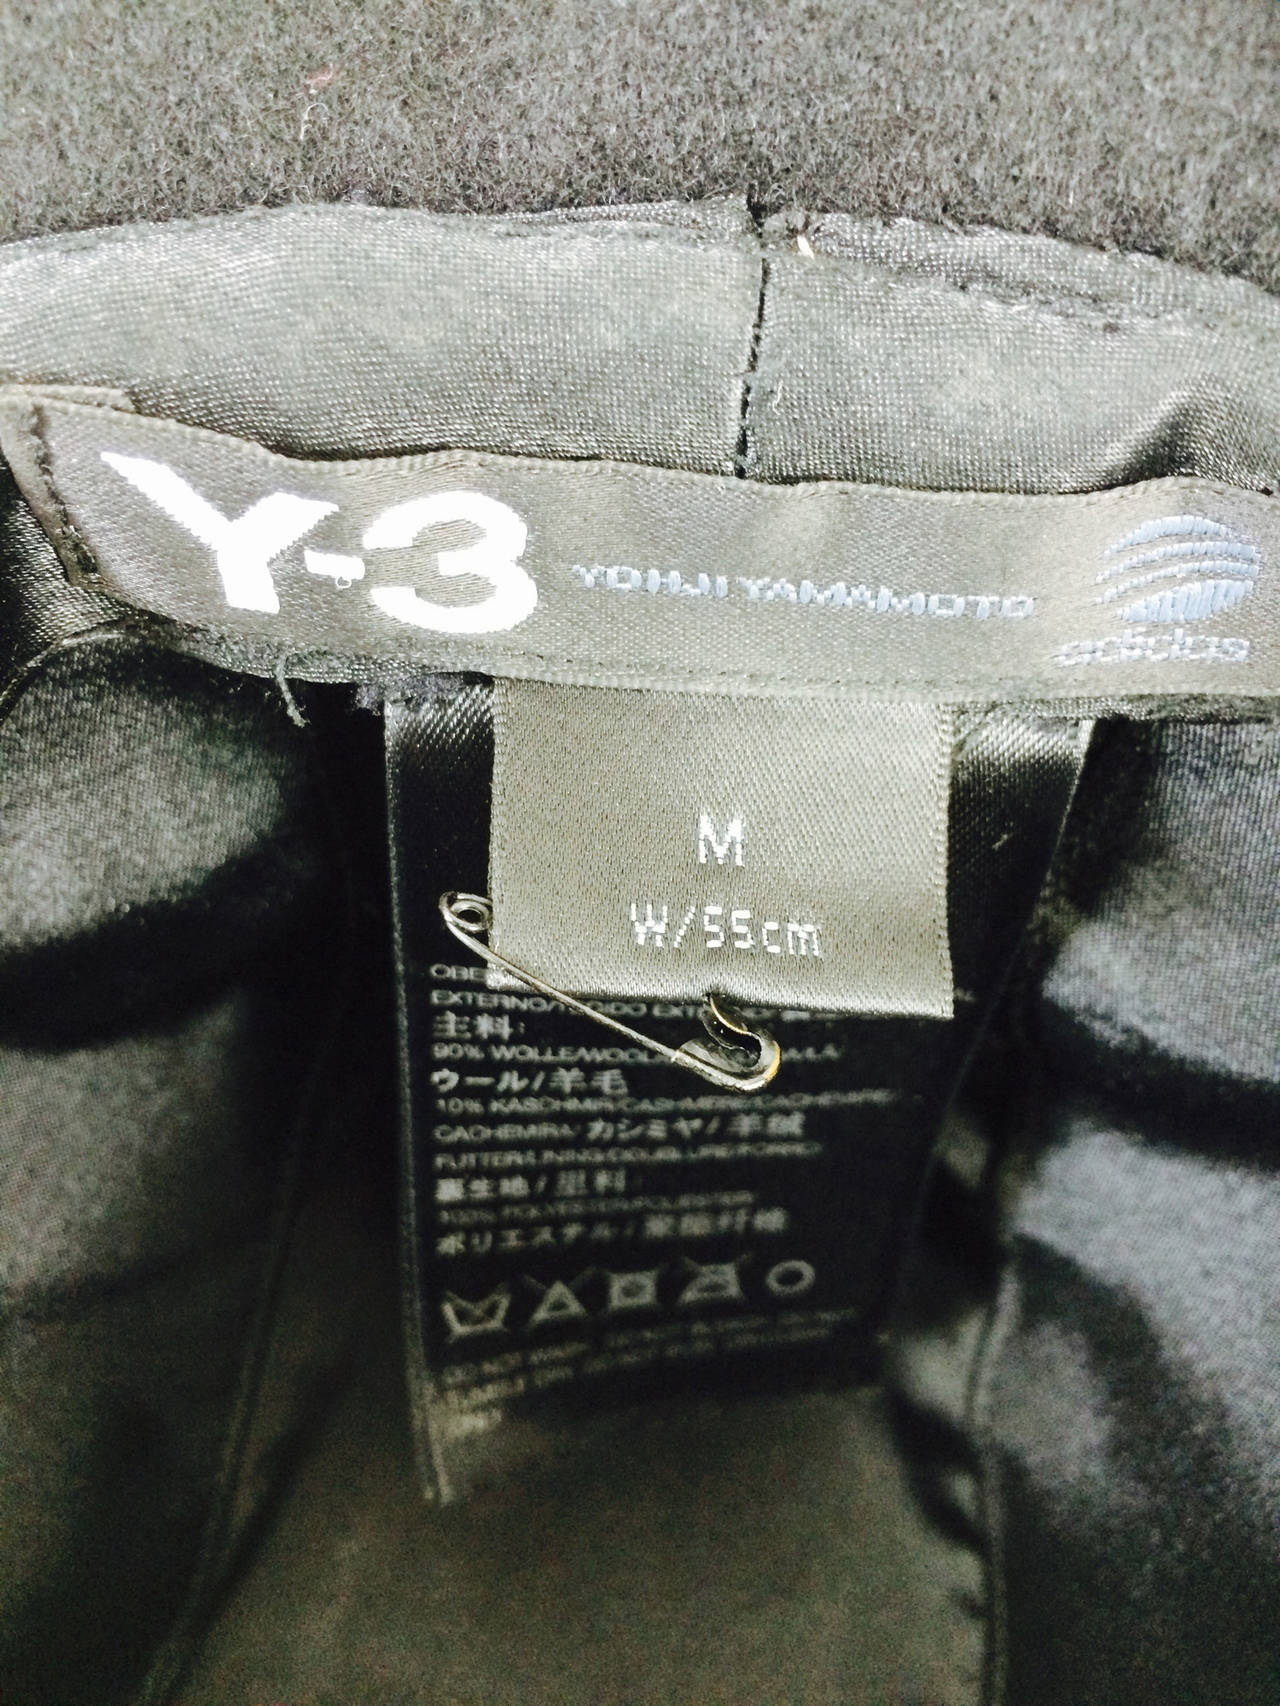 Yohji Yamamoto Y-3 Adidas cashmere blend trilby fedora size medium...In very good condition...Wool/cashmere blend...Please email for more photos or information.